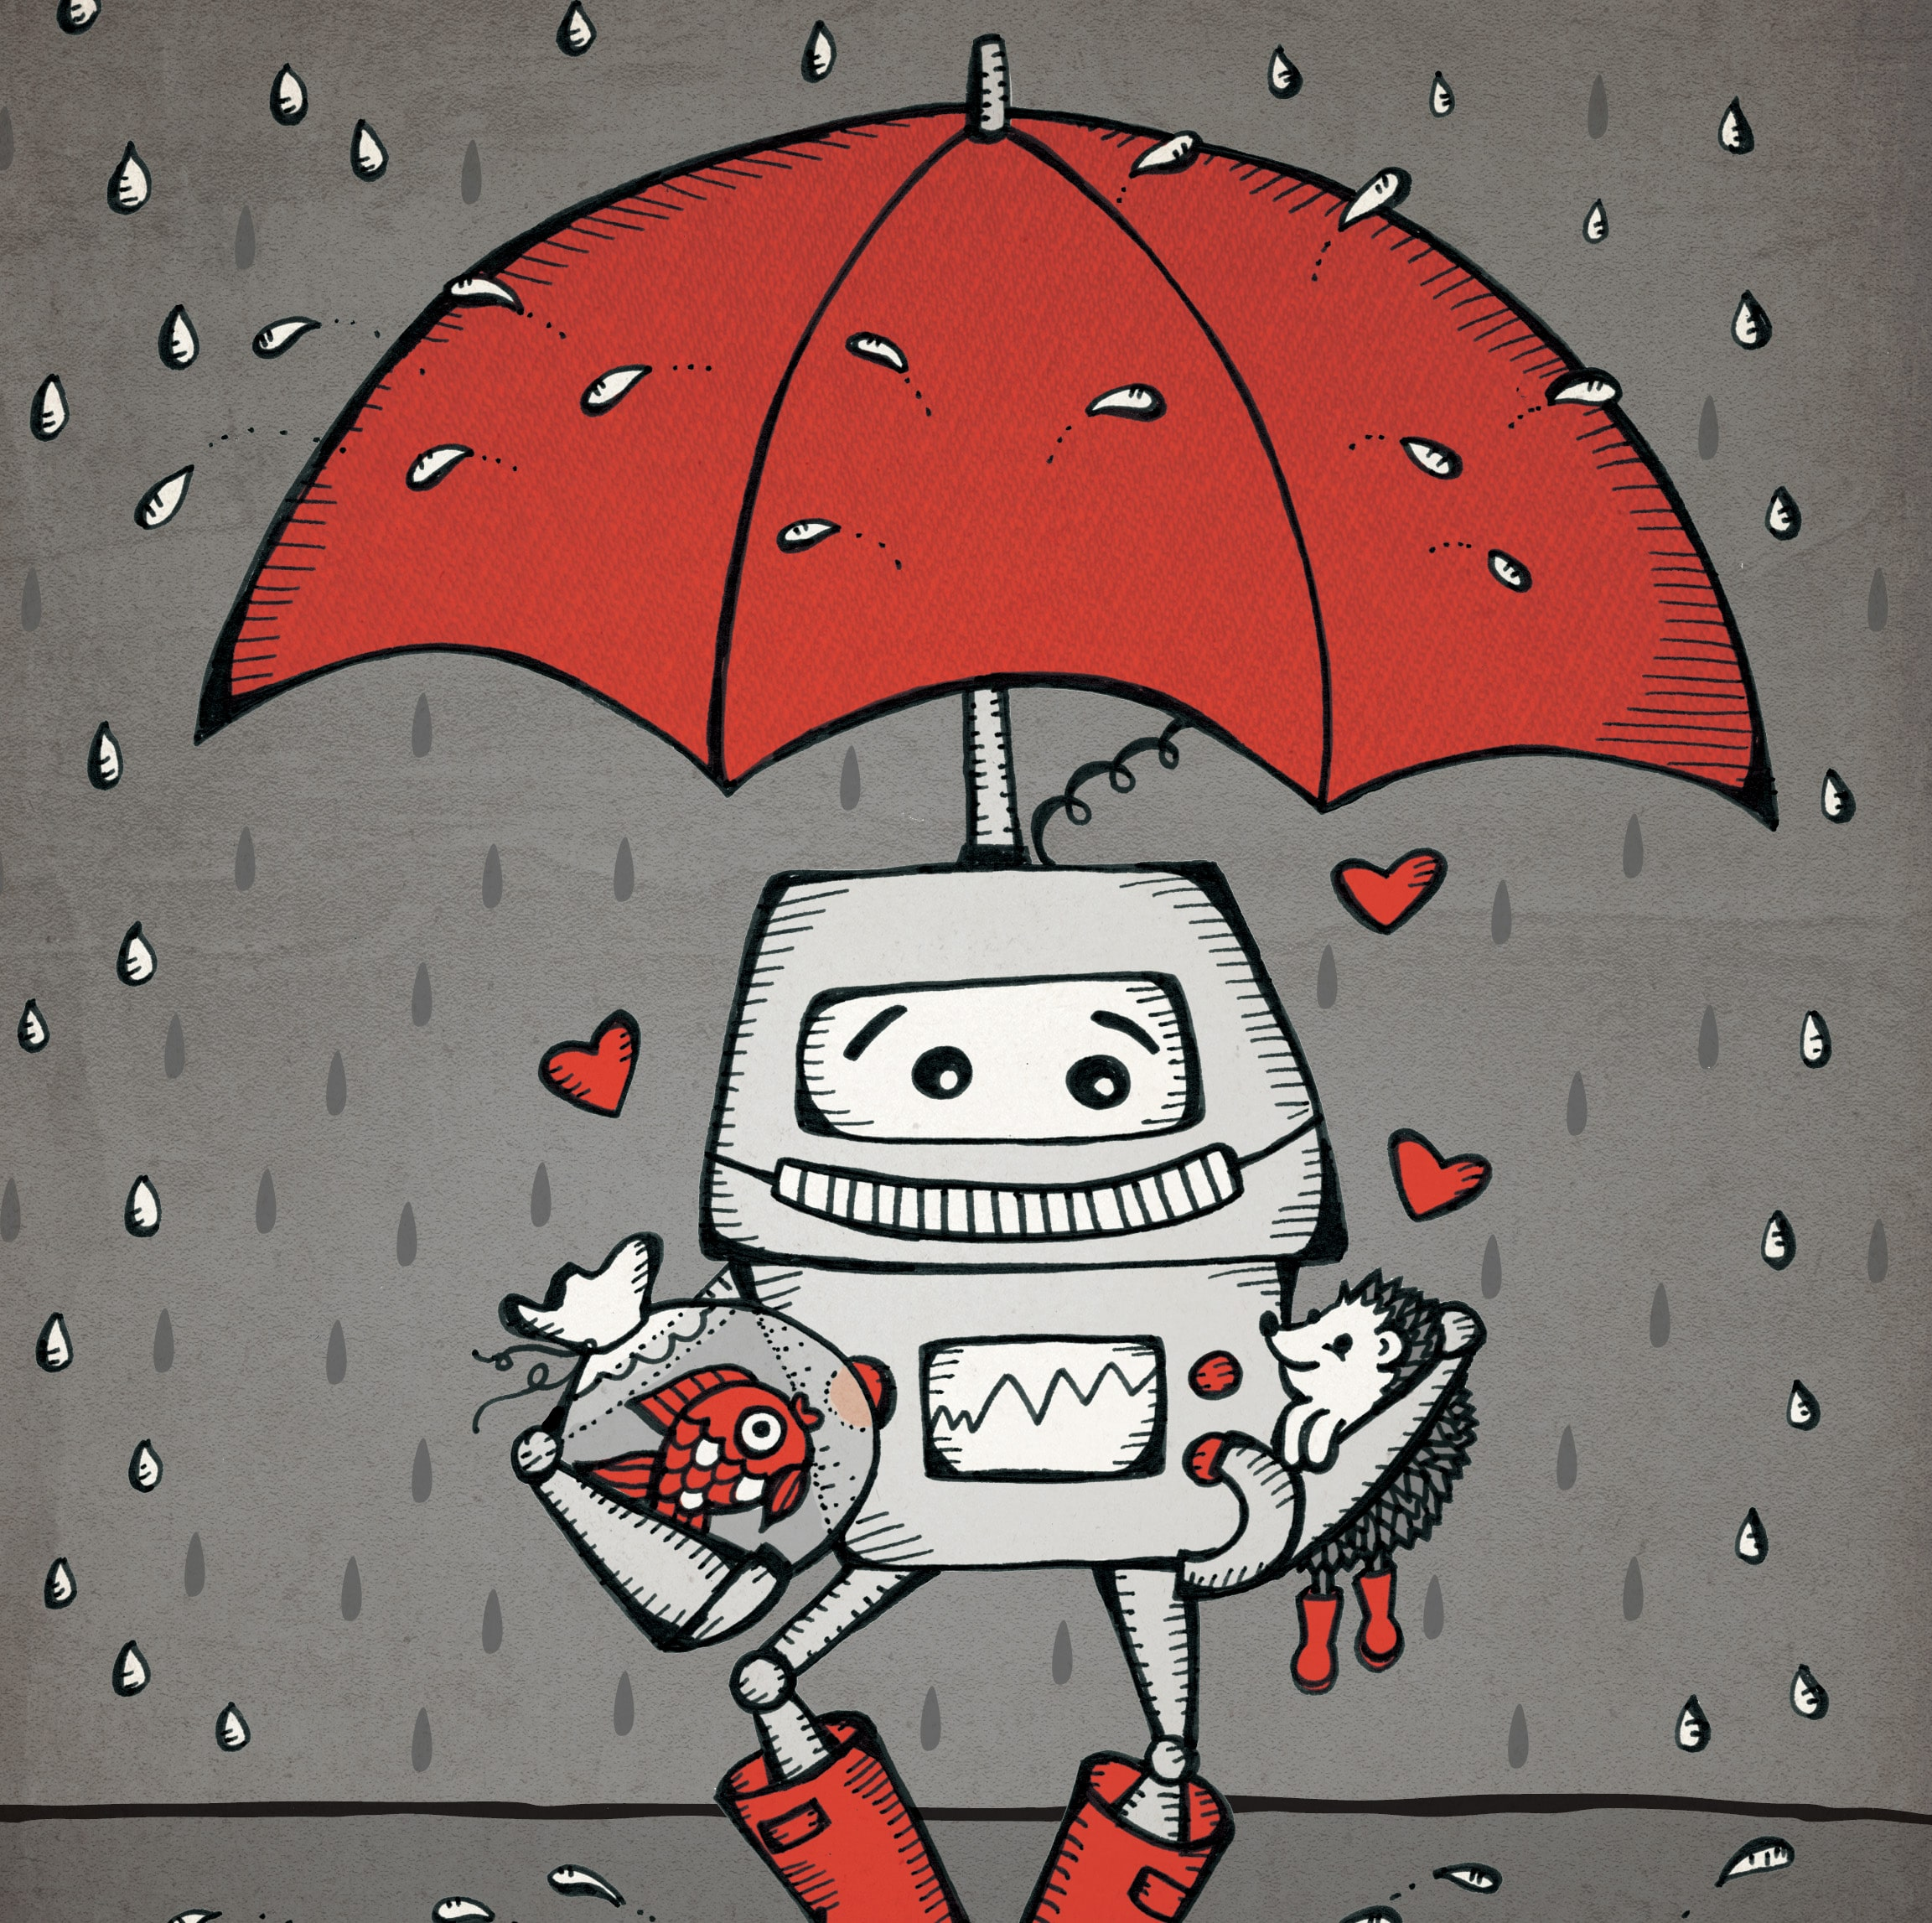 Teaching a Robot to Love